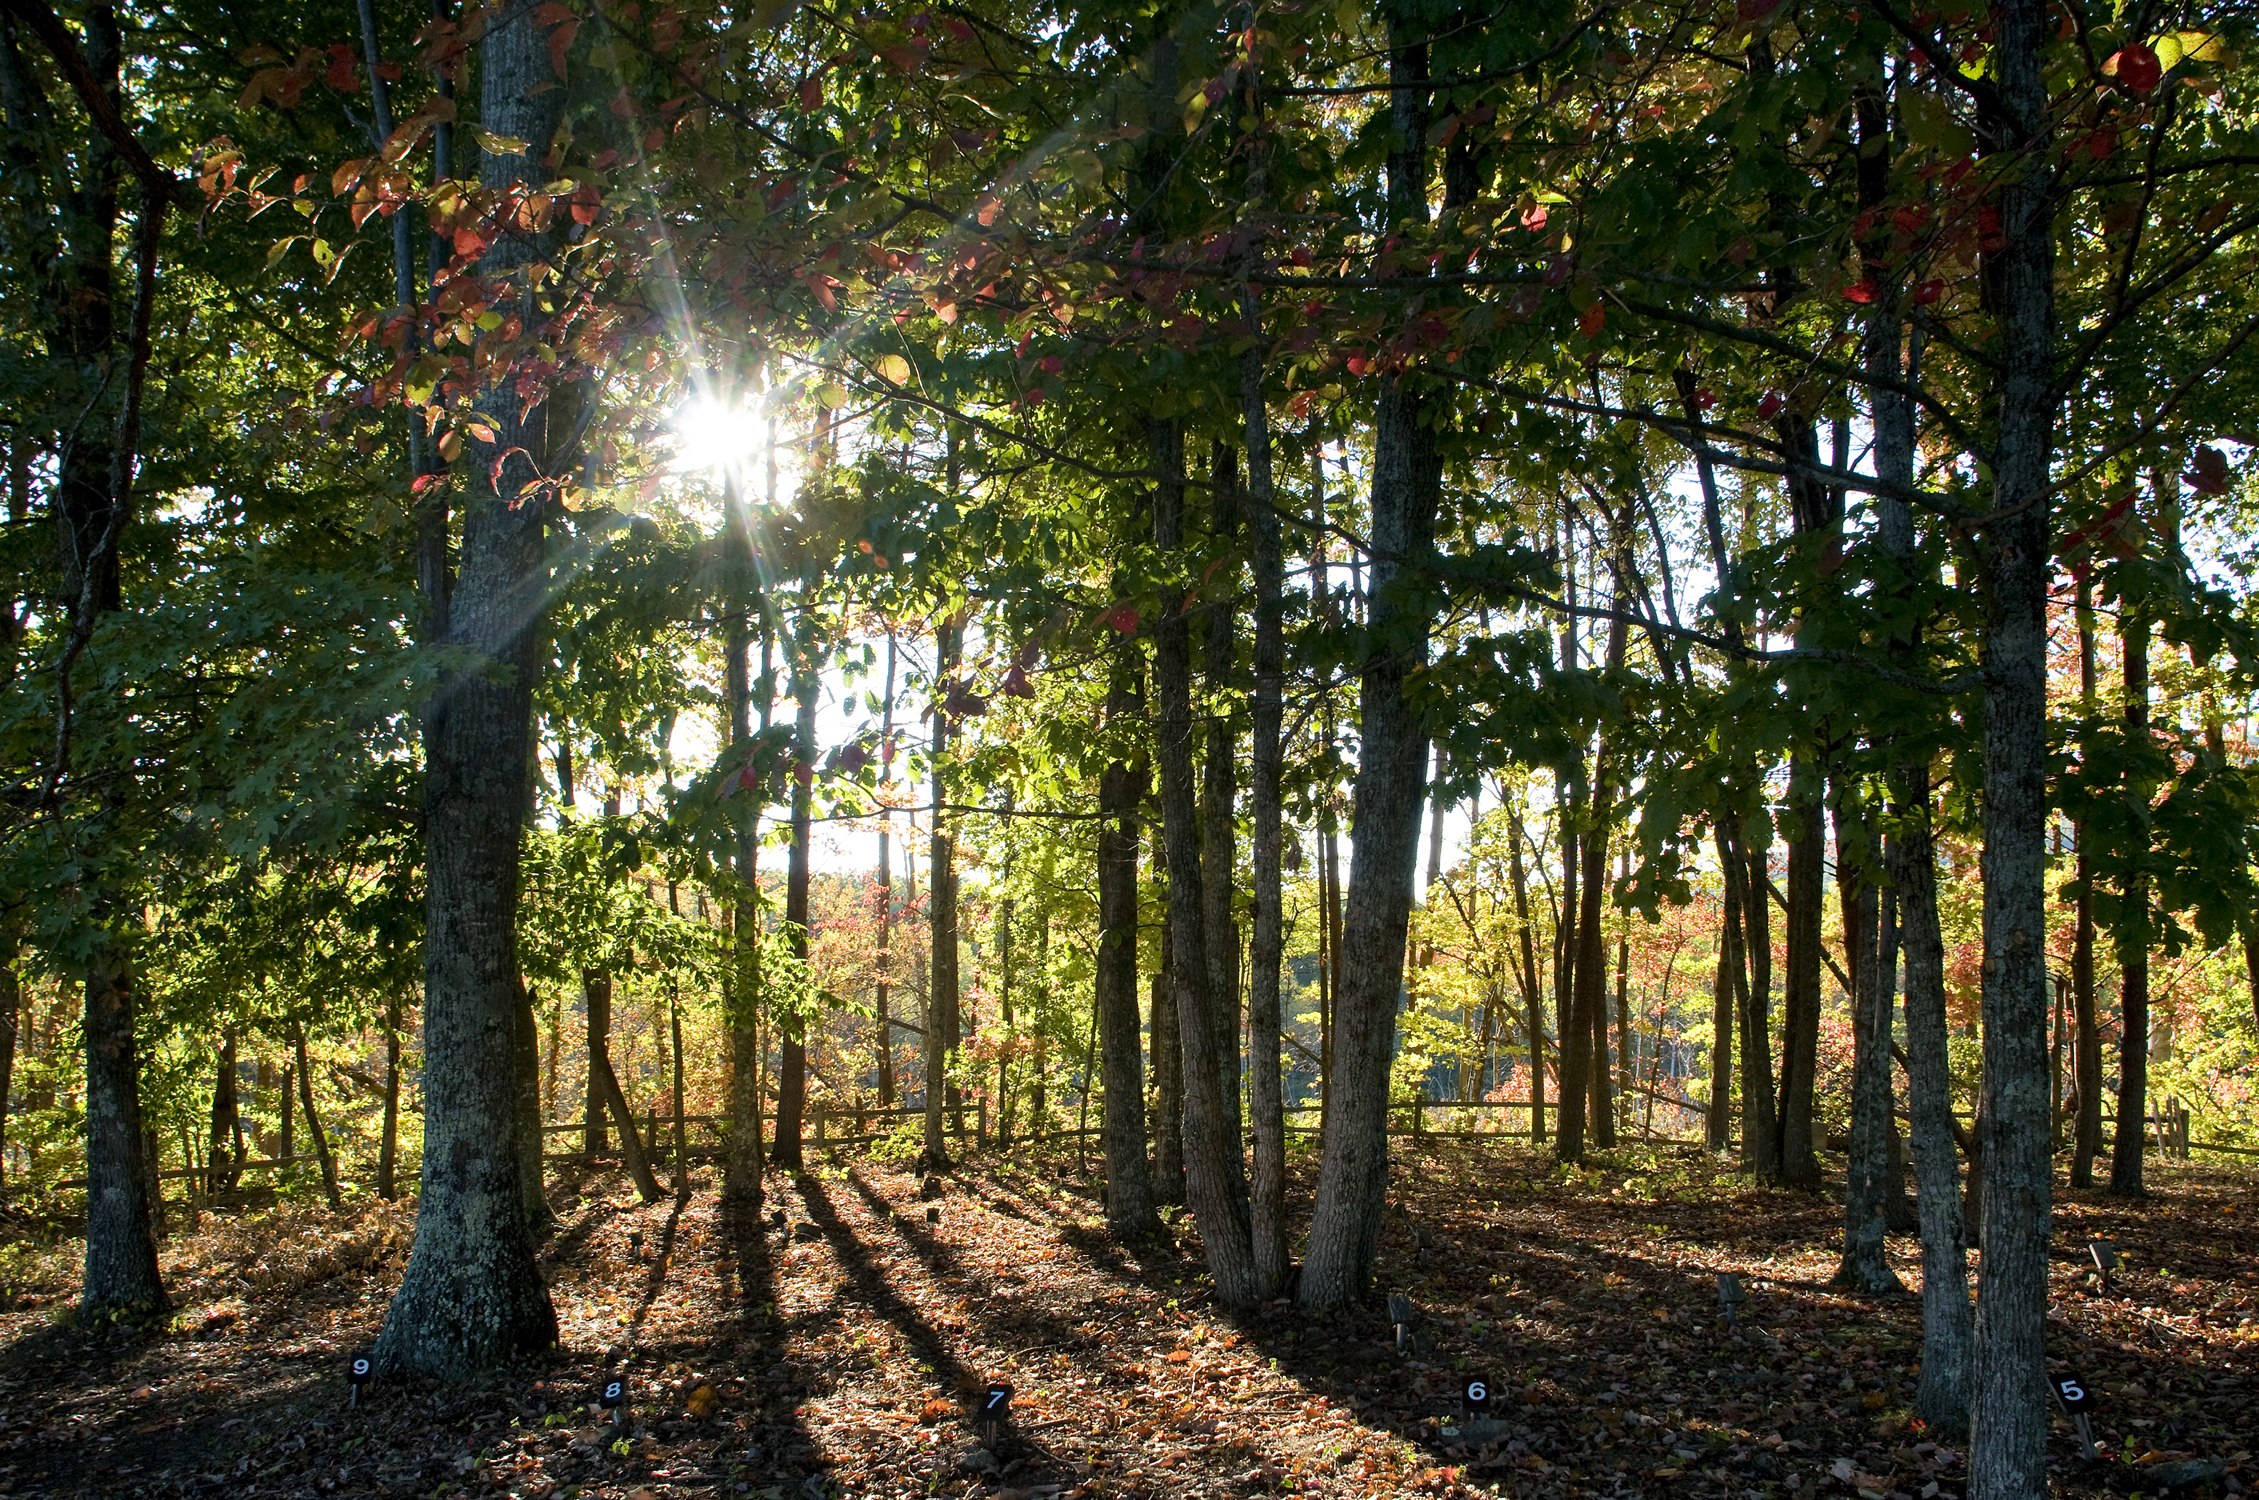 Sun shines through grove of trees.